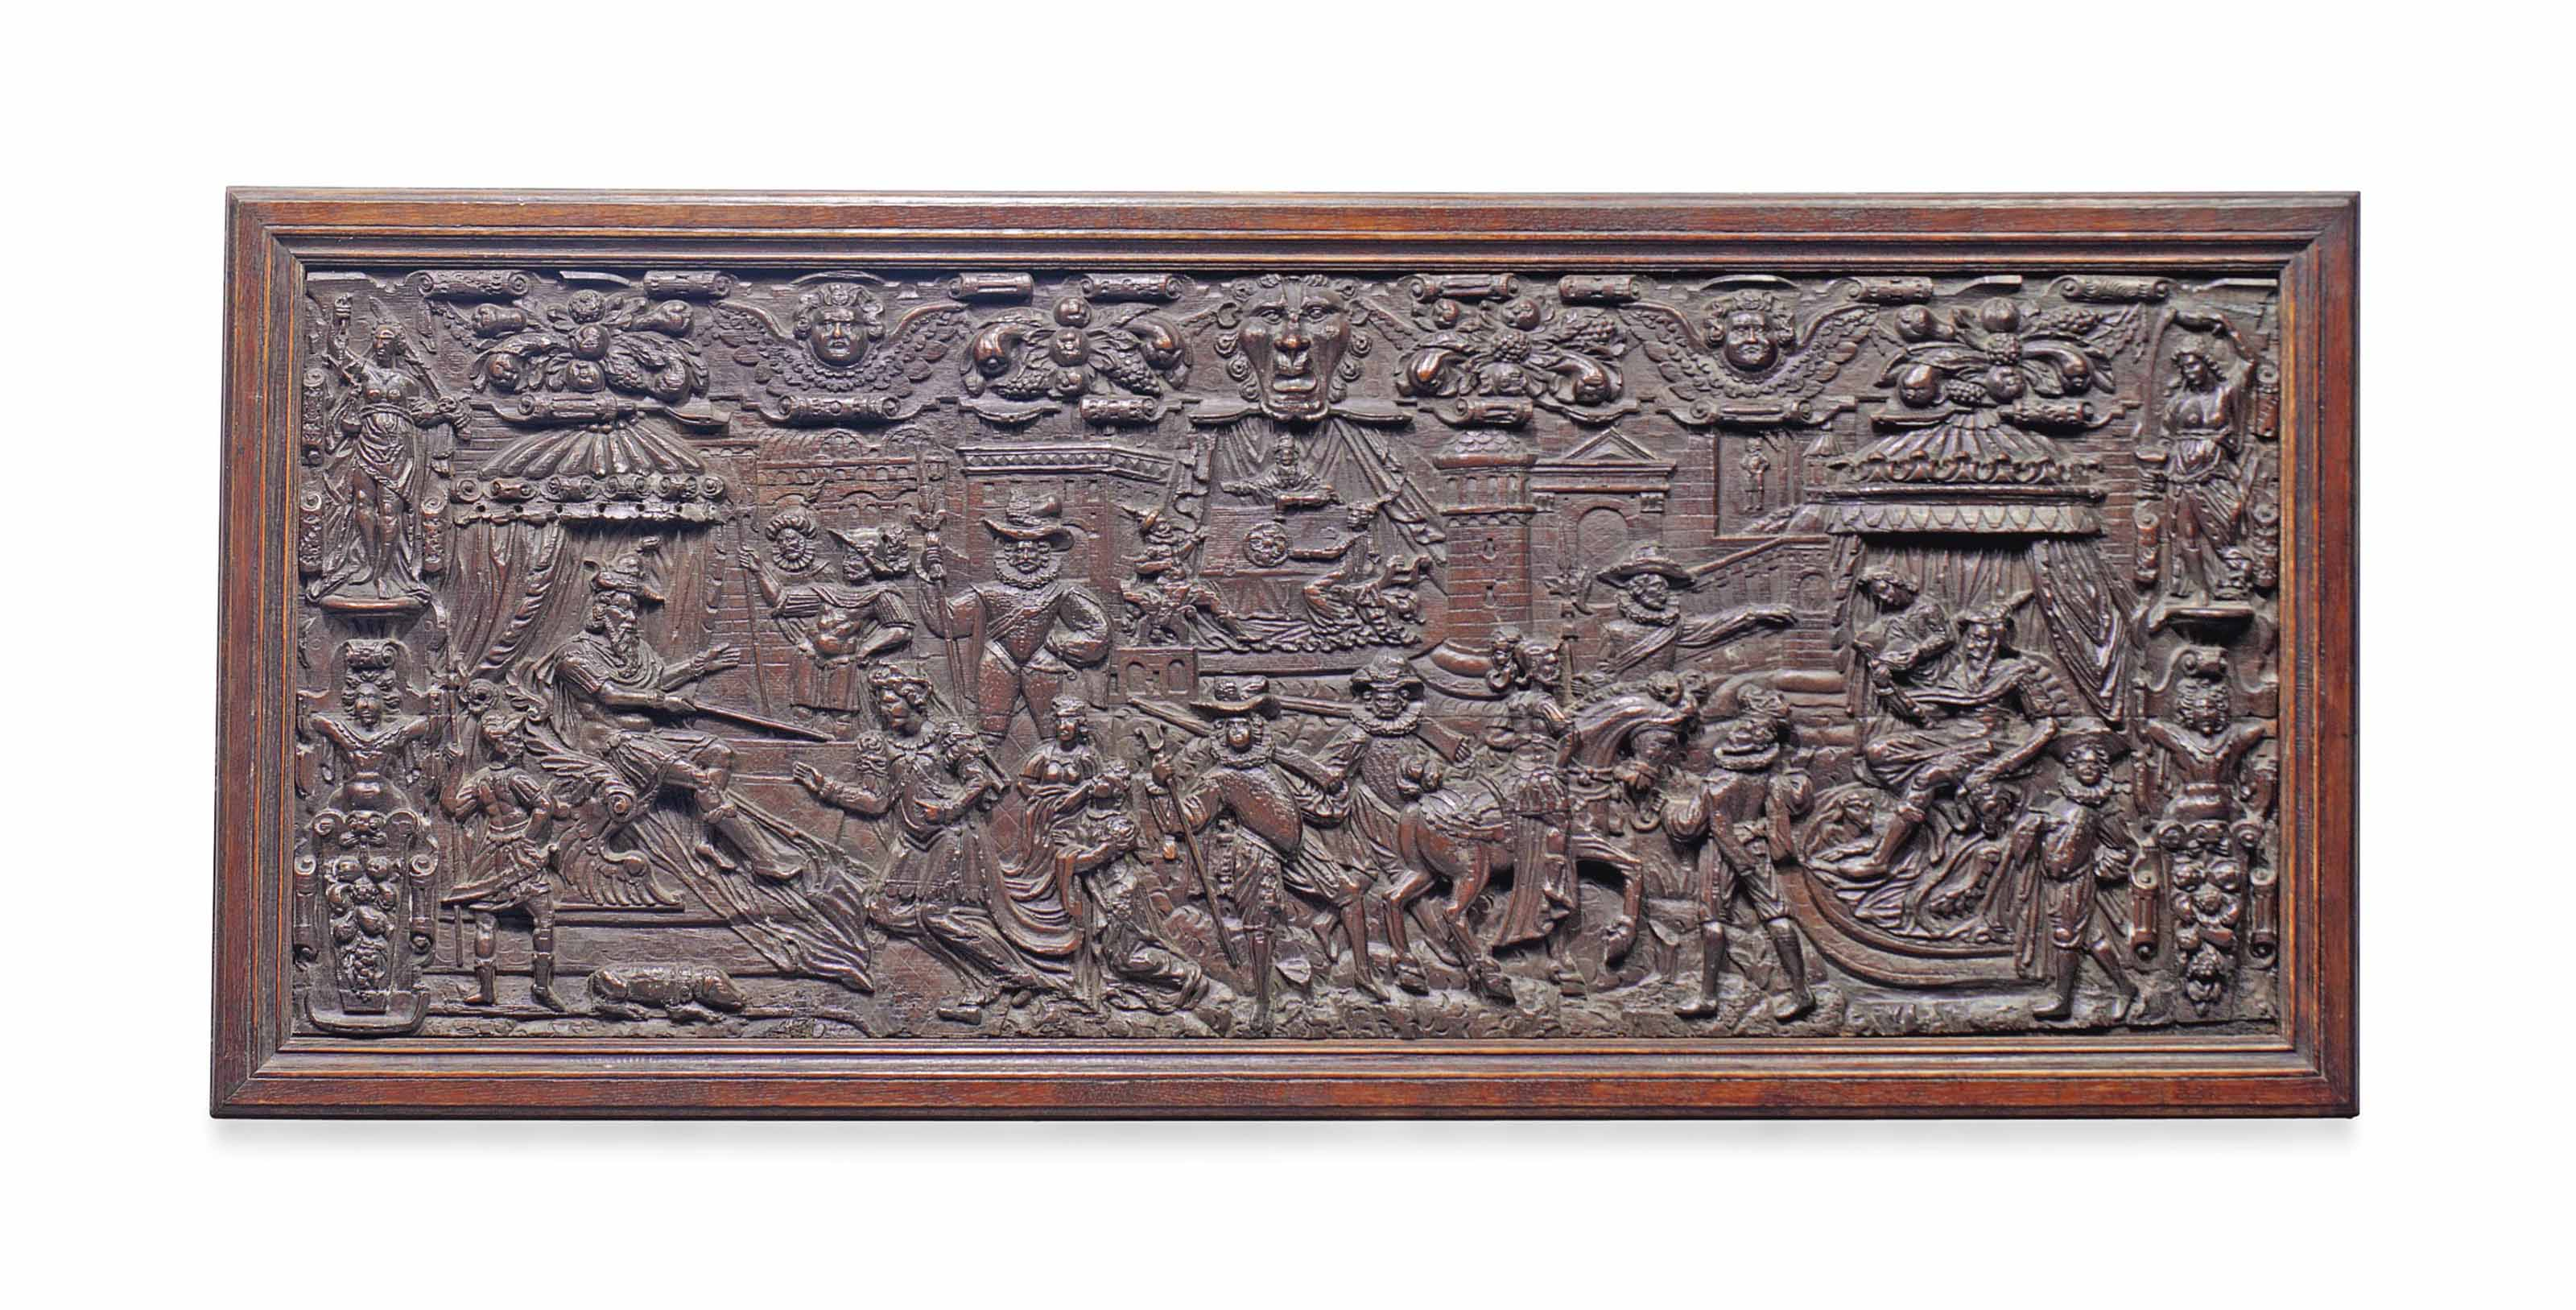 A LARGE CARVED OAK PANEL